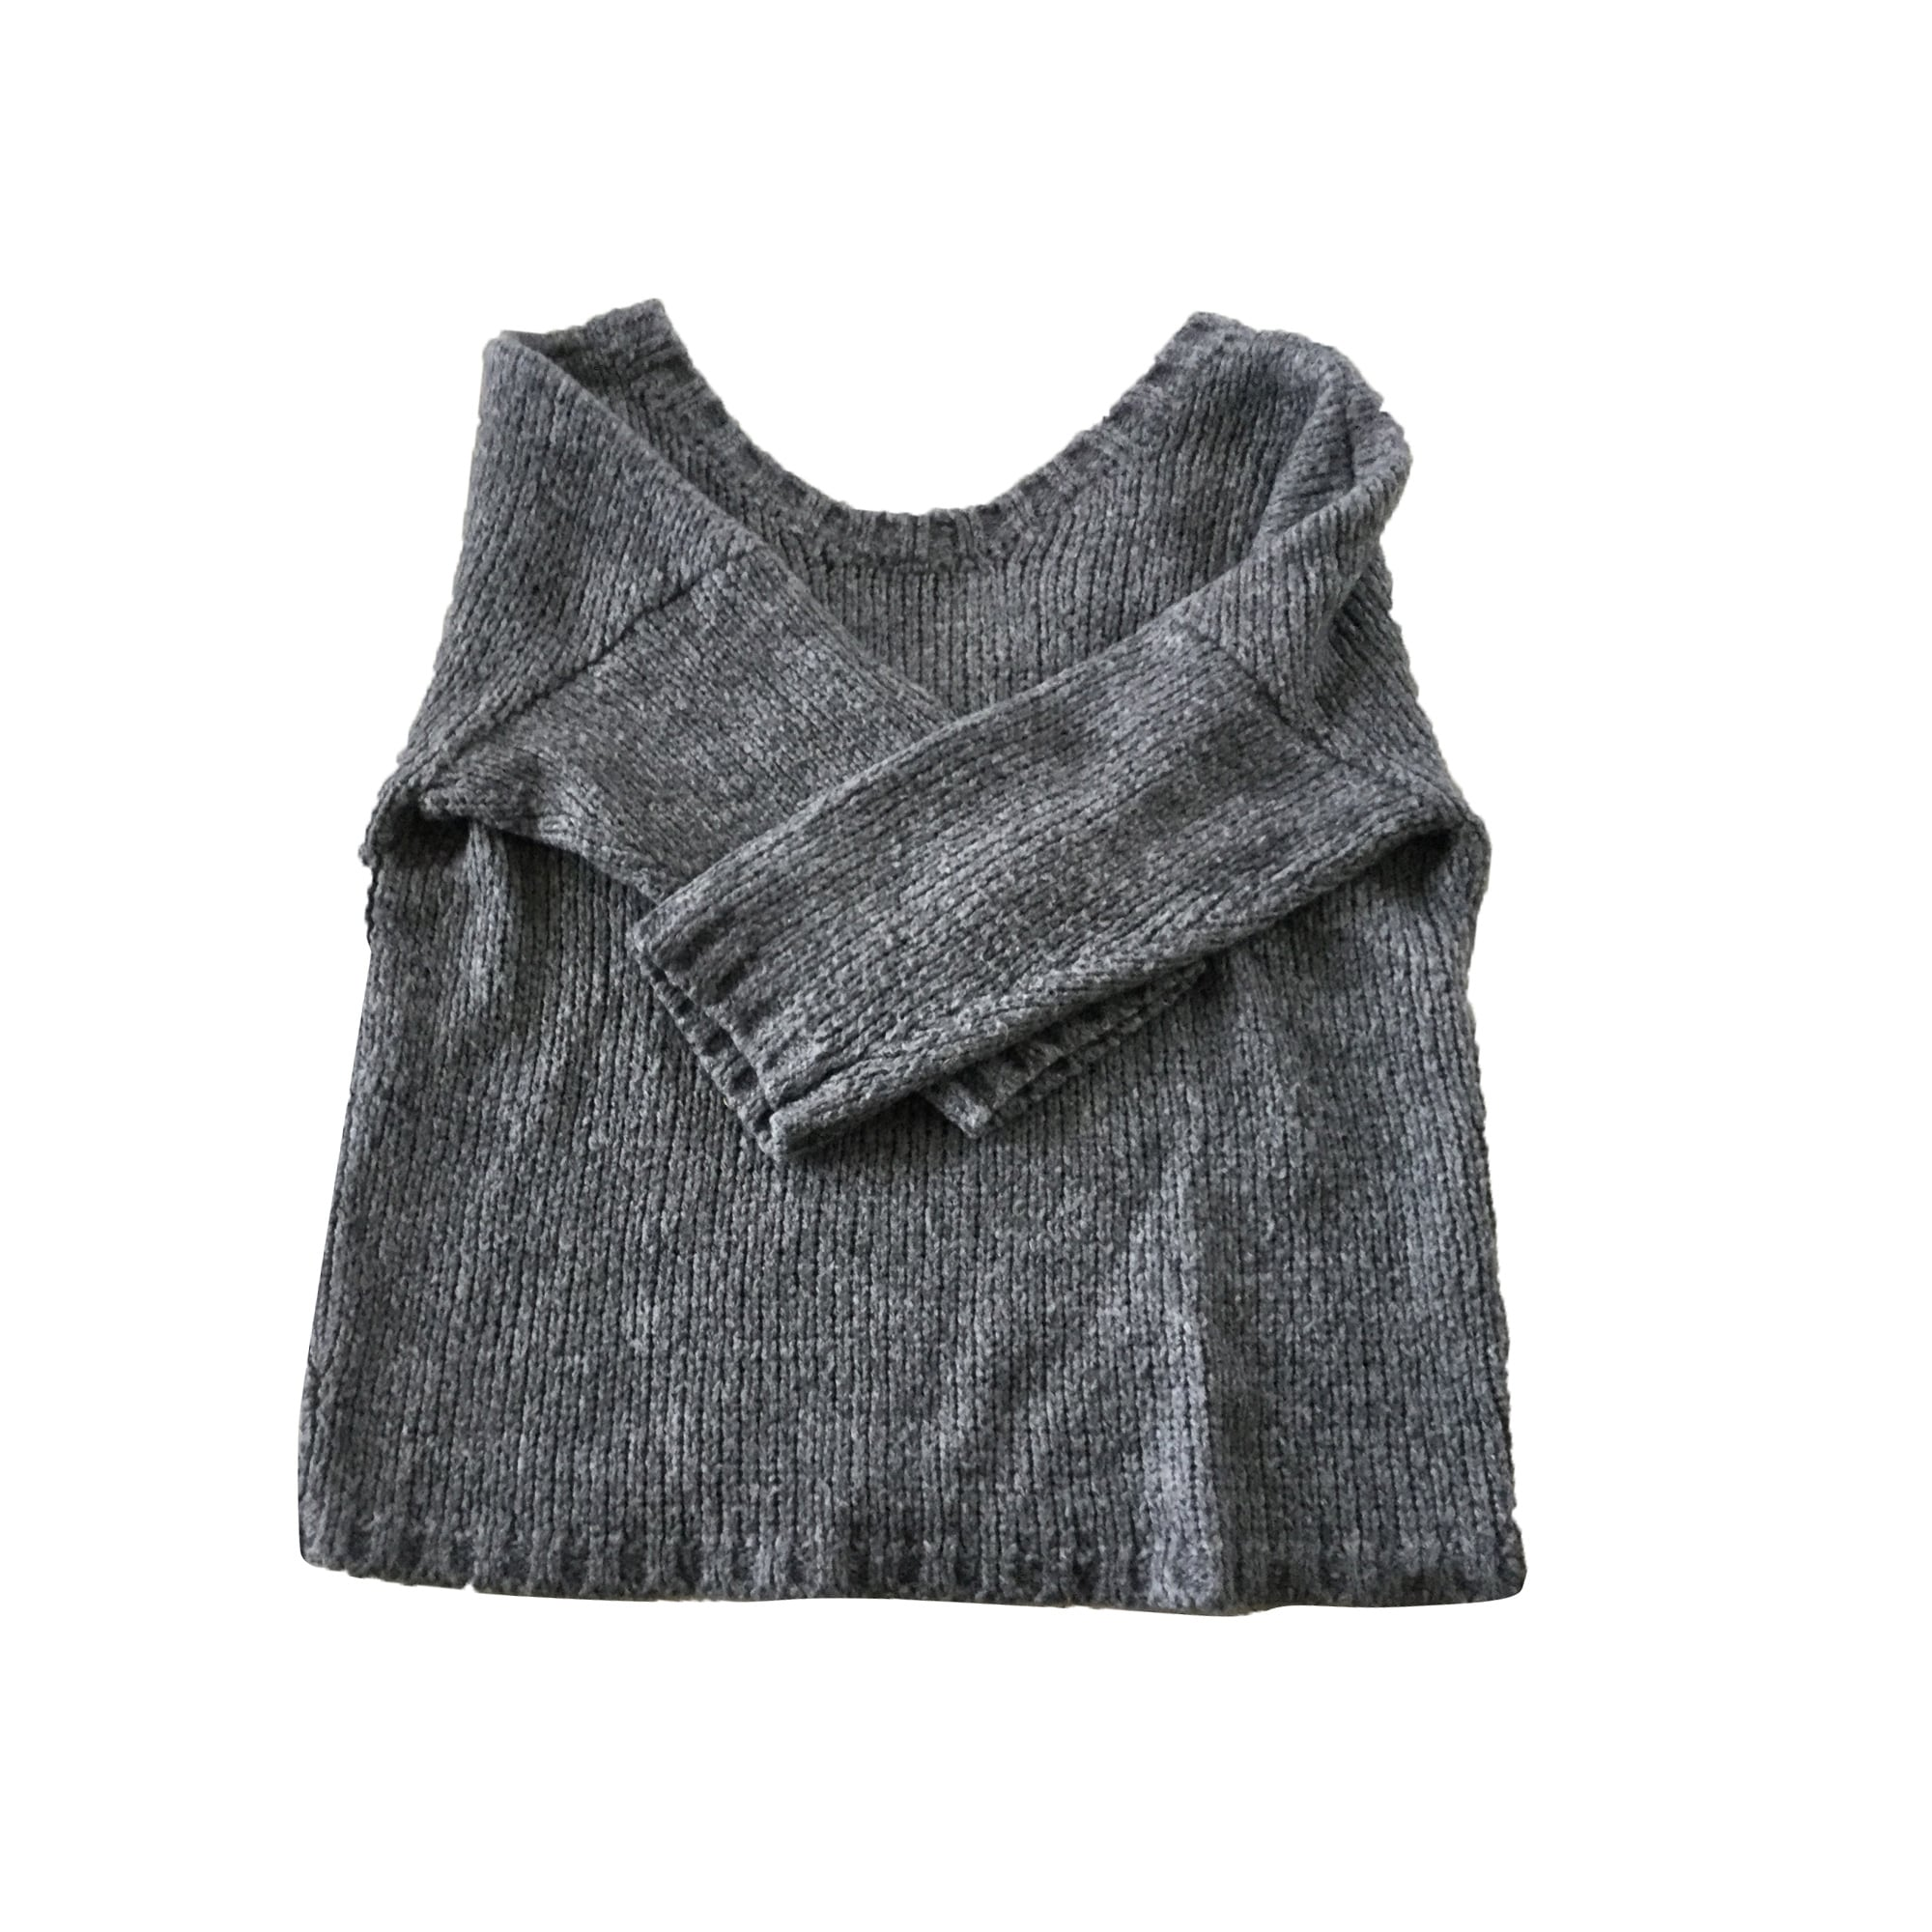 Sweater BA&SH Gray, charcoal